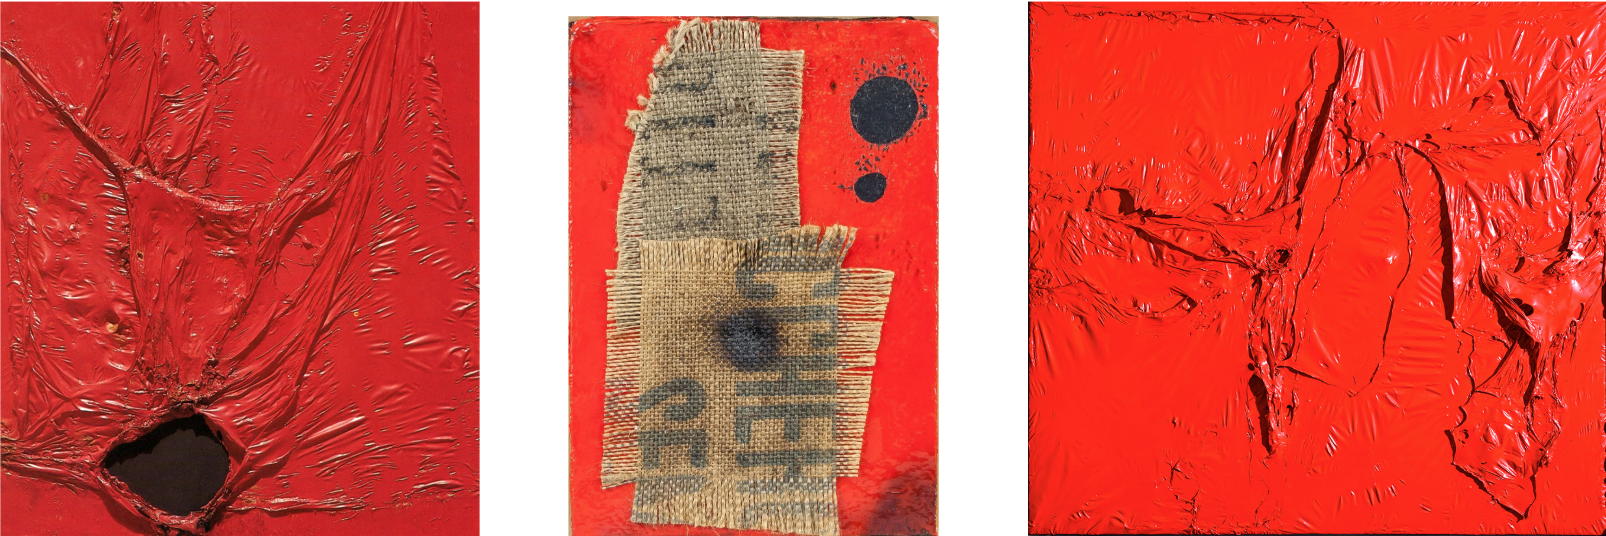 Examples of abstract paintings by Alberto Burri